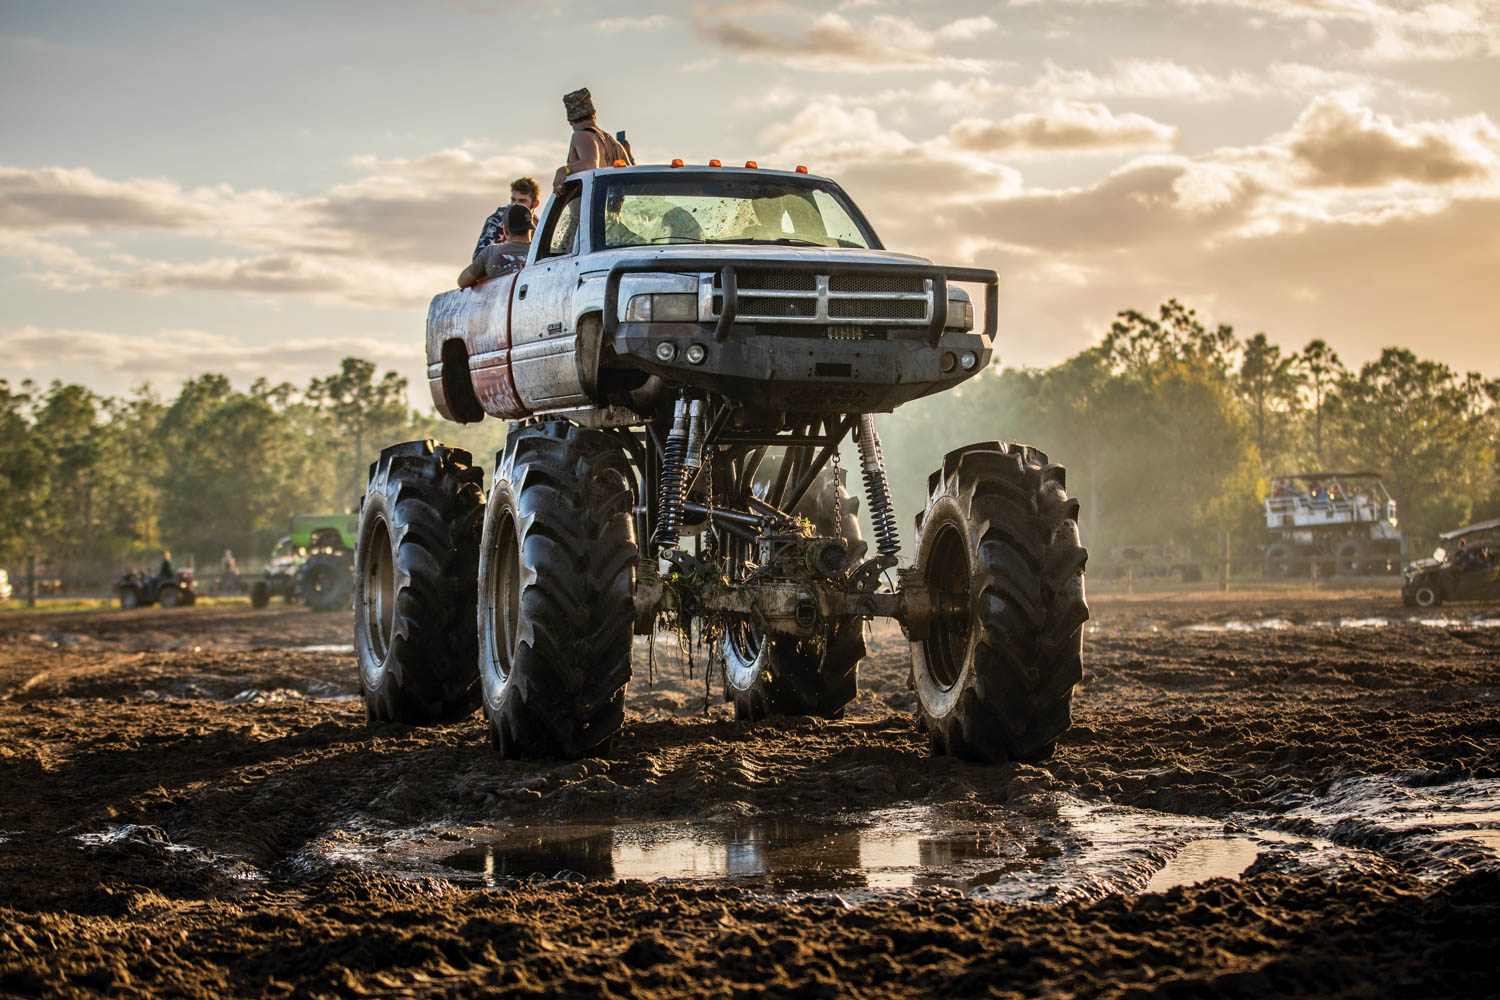 Florida S Epic Festival Of Dirt And Horsepower Goes Down At Redneck Mud Park Hagerty Media